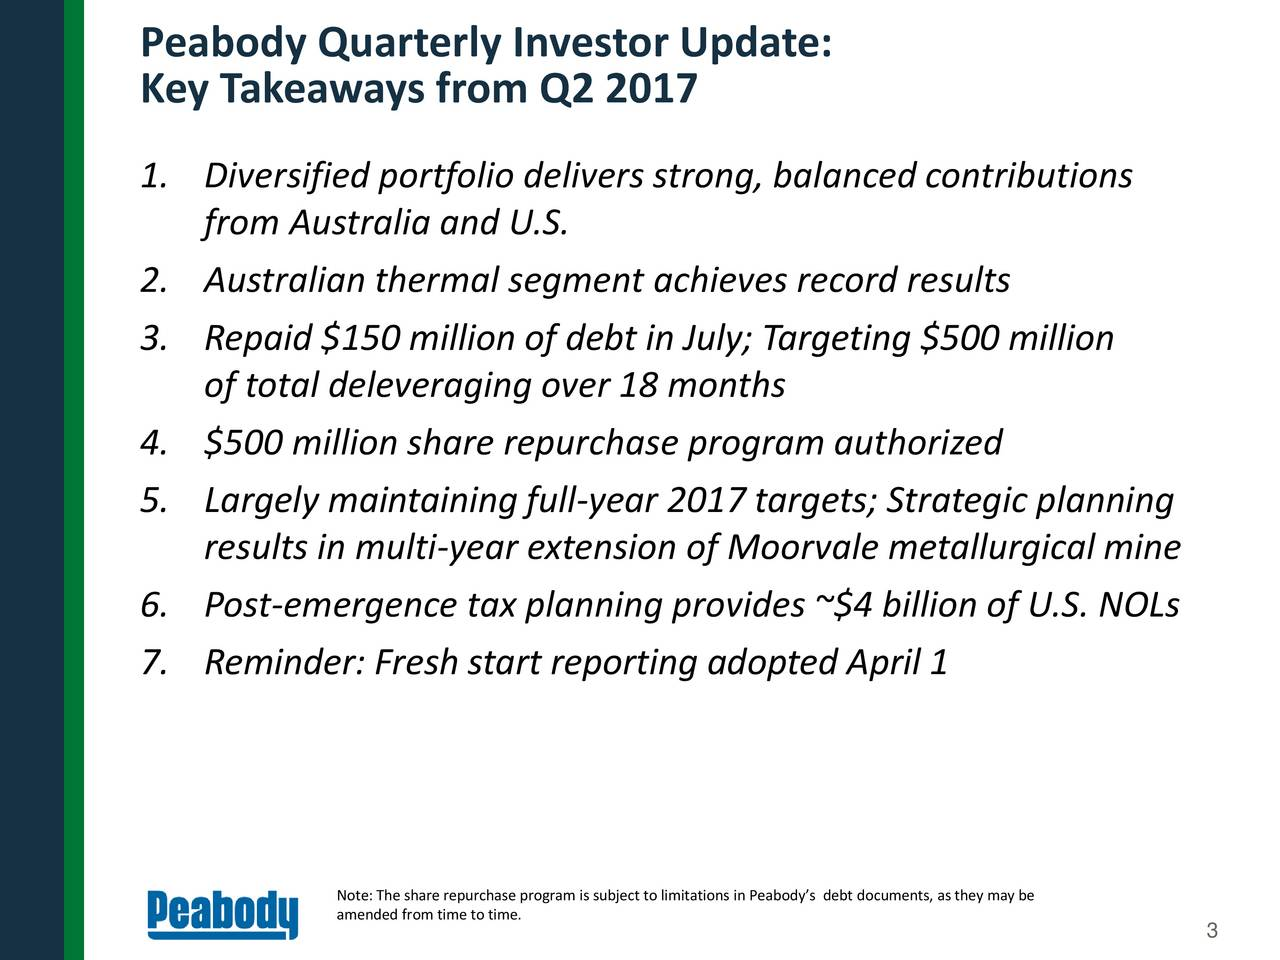 Key Takeaways from Q2 2017 1. Diversified portfolio delivers strong, balanced contributions from Australia and U.S. 2. Australian thermal segment achieves record results 3. Repaid $150 million of debt in July; Targeting $500 million of total deleveraging over 18 months 4. $500 million share repurchase program authorized 5. Largely maintaining full-year 2017 targets; Strategic planning results in multi-year extension of Moorvale metallurgical mine 6. Post-emergence tax planning provides ~$4 billion of U.S. NOLs 7. Reminder: Fresh start reporting adopted April 1 Note: The share repurchase program is subject to limitations in Peabodys debt documents, as they may be amended from time to time. 3